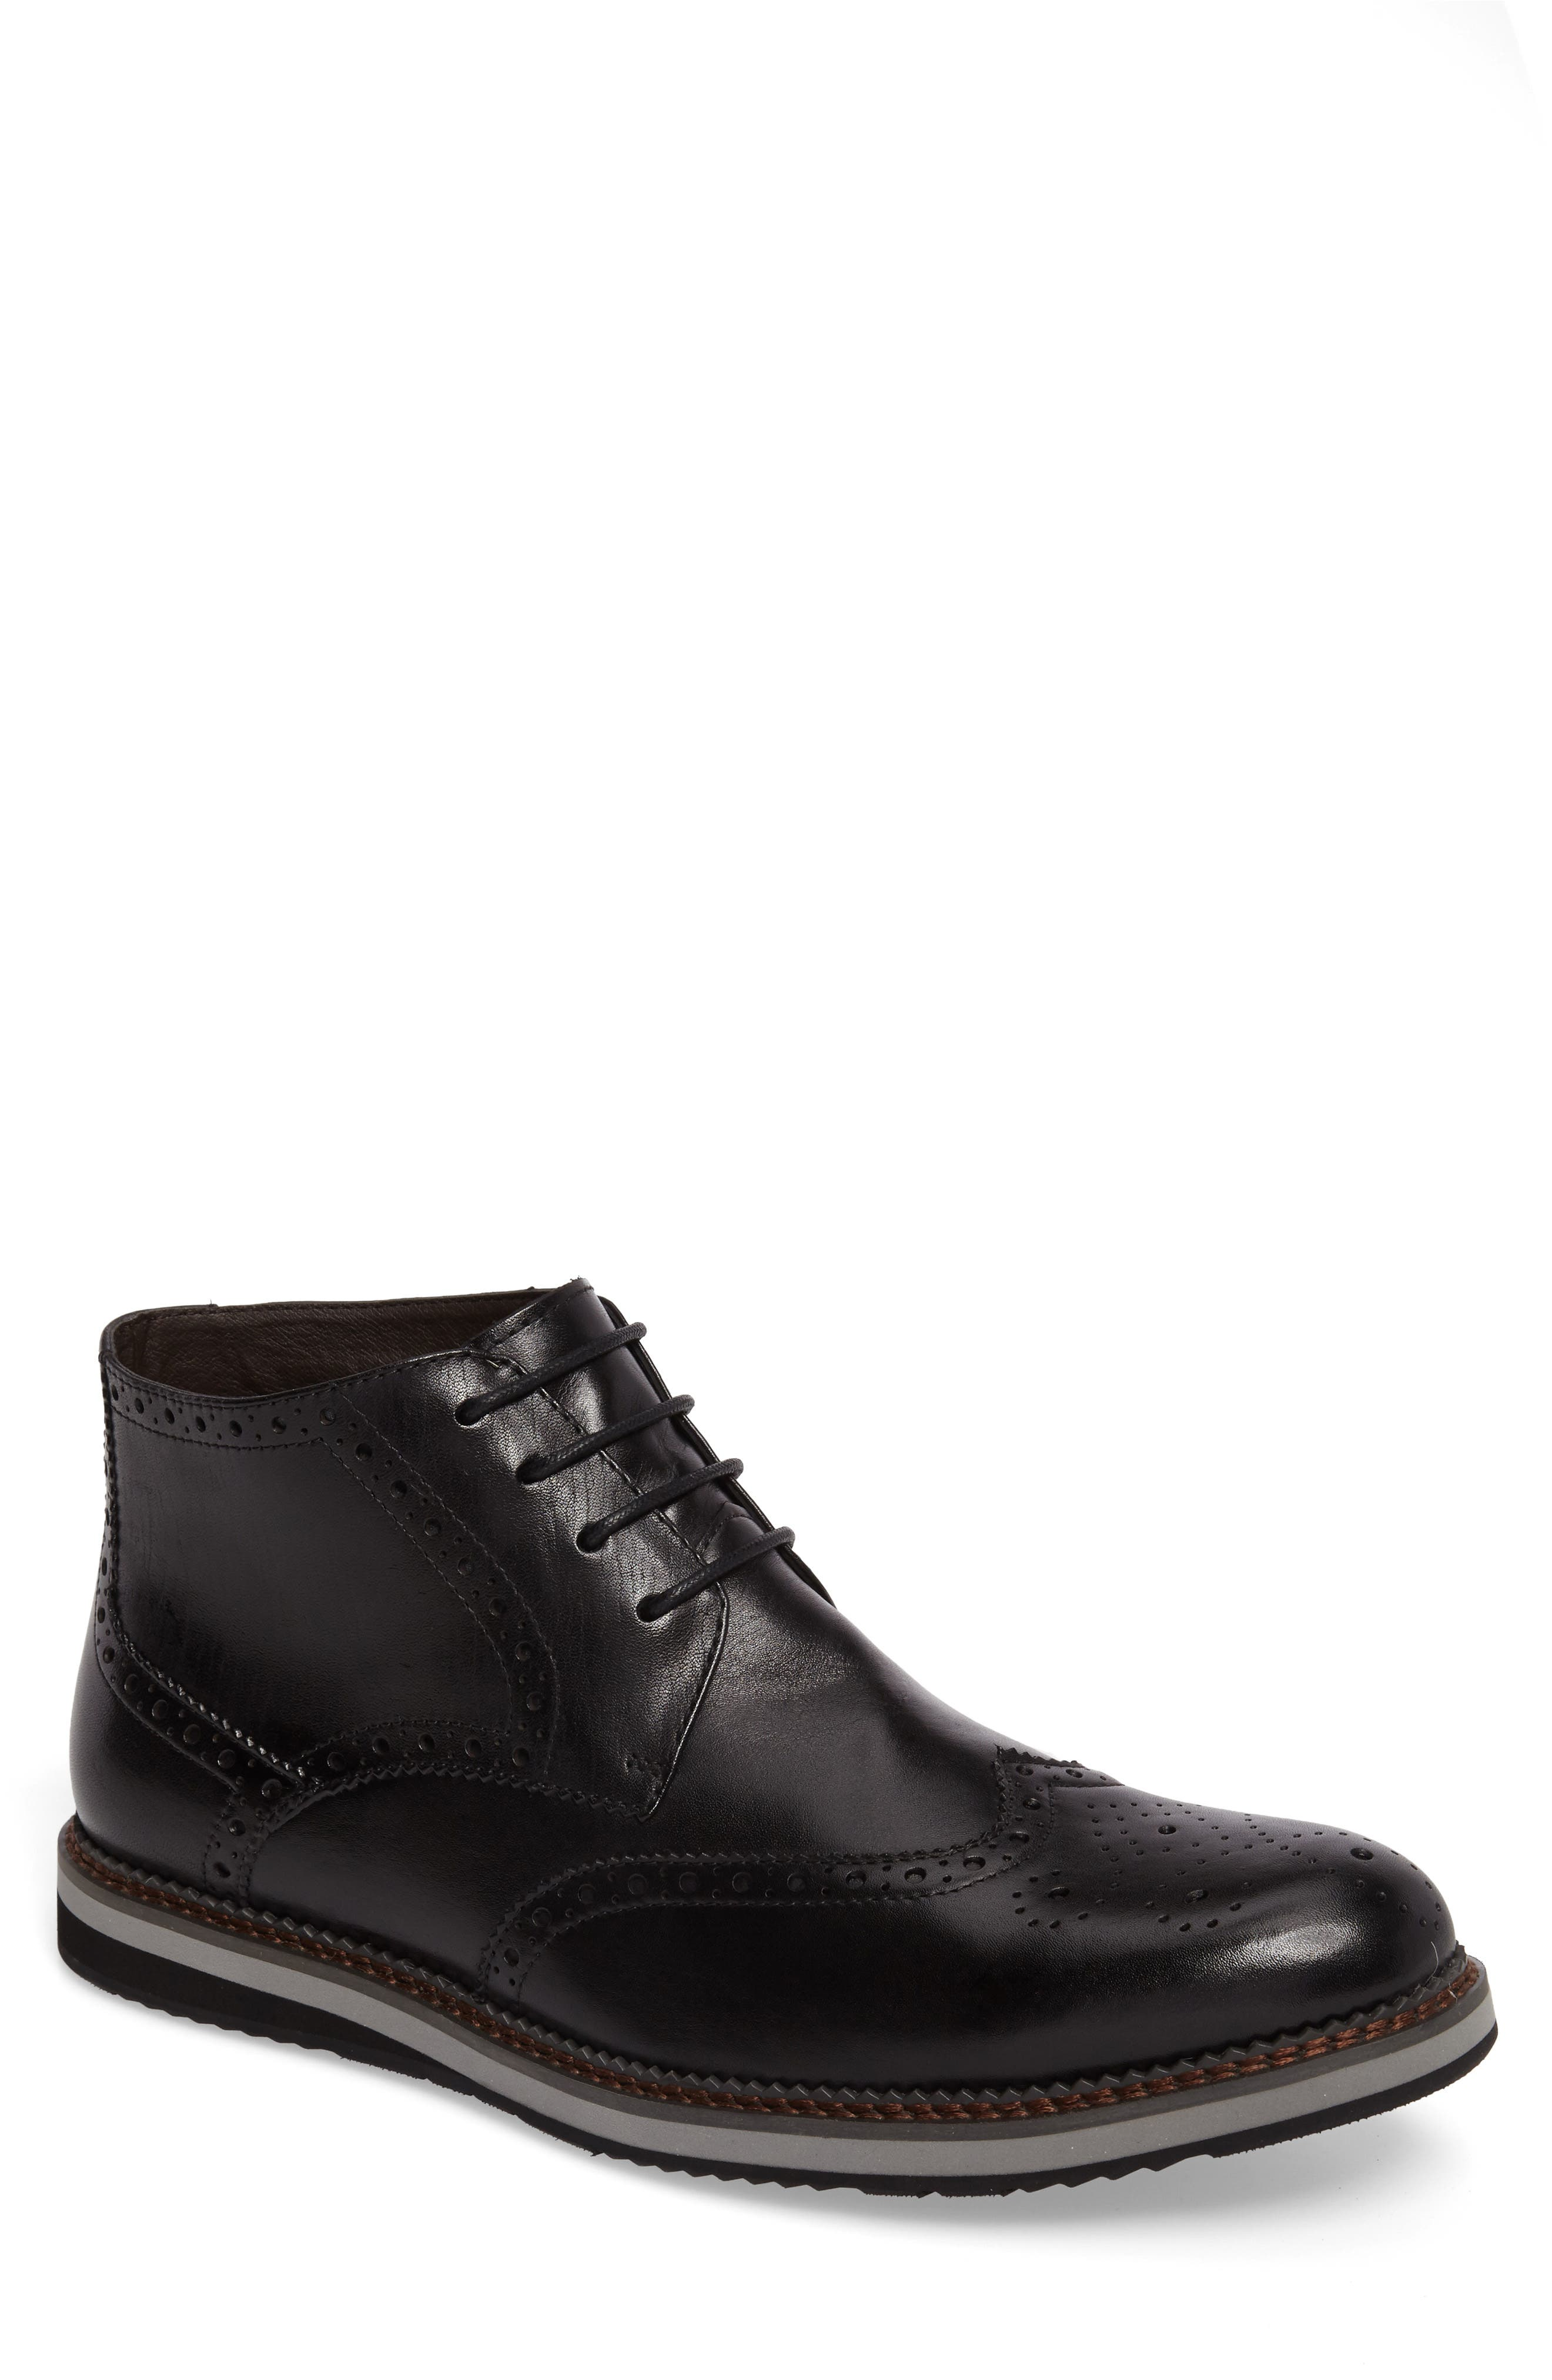 Alternate Image 1 Selected - English Laundry Ascot Wingtip Boot (Men)